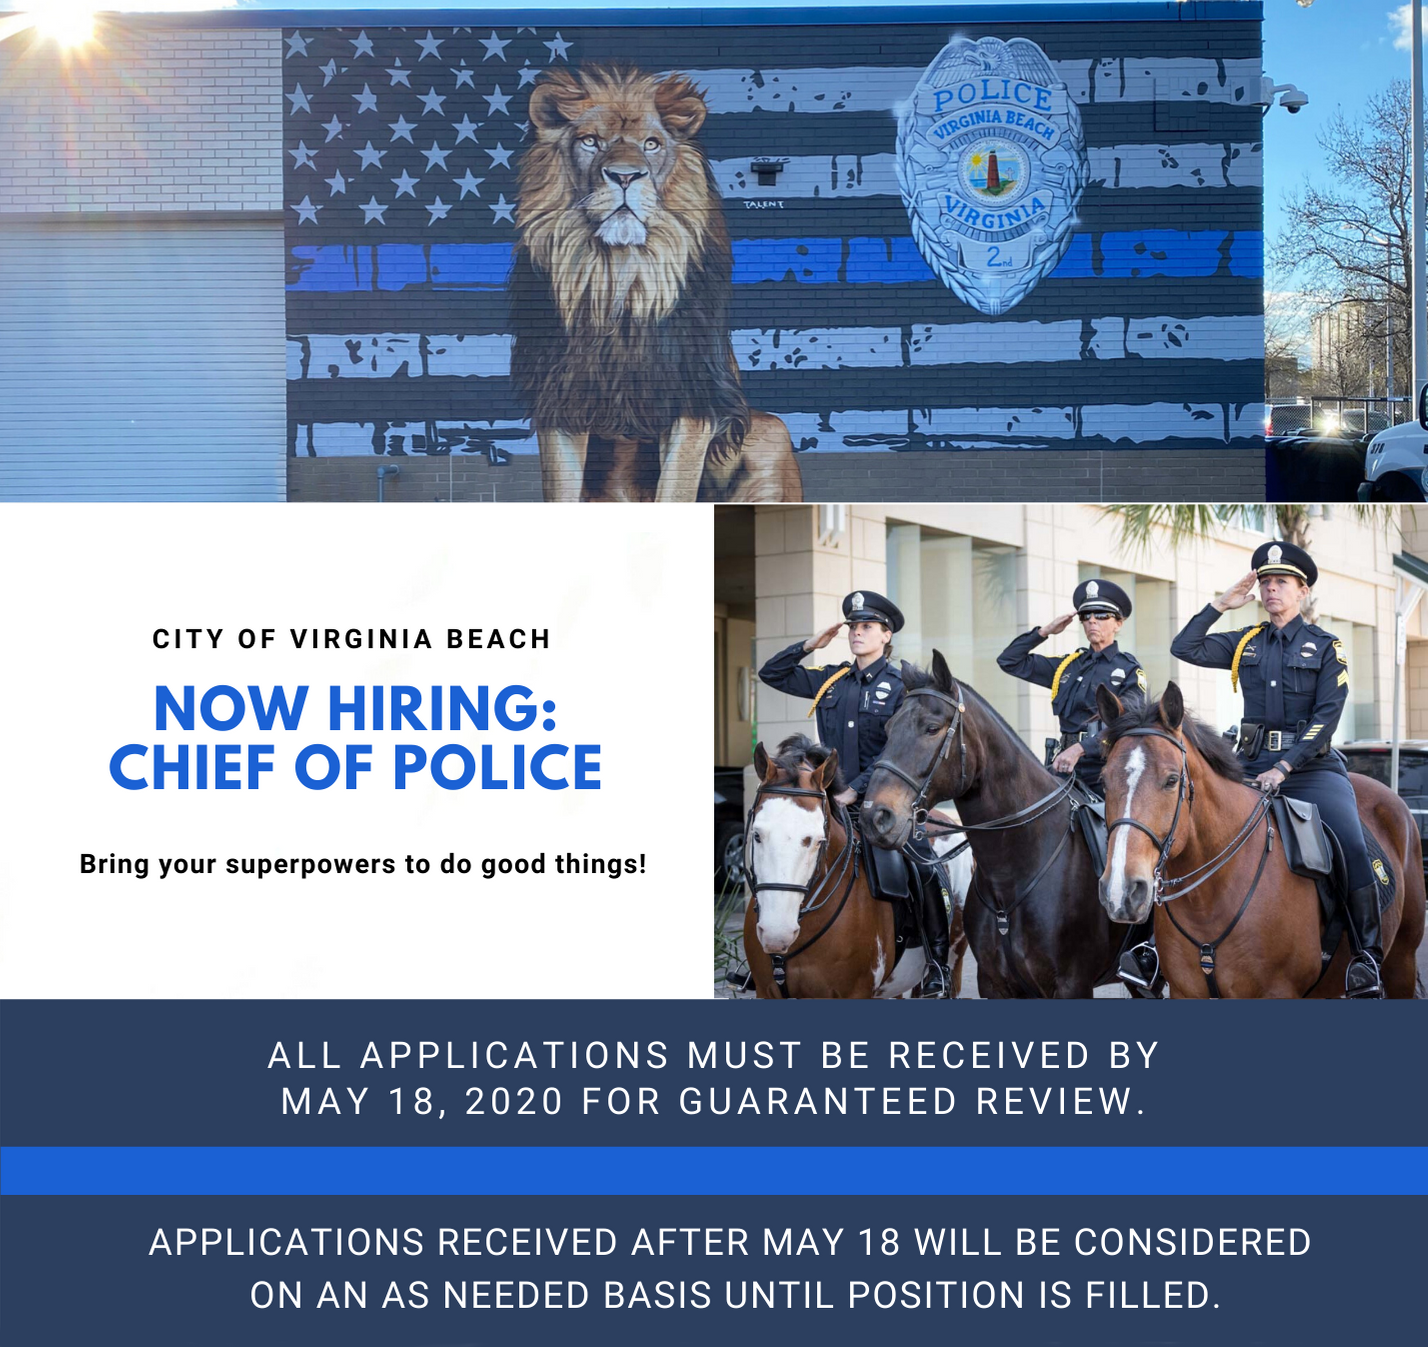 We're Hiring: Chief of Police